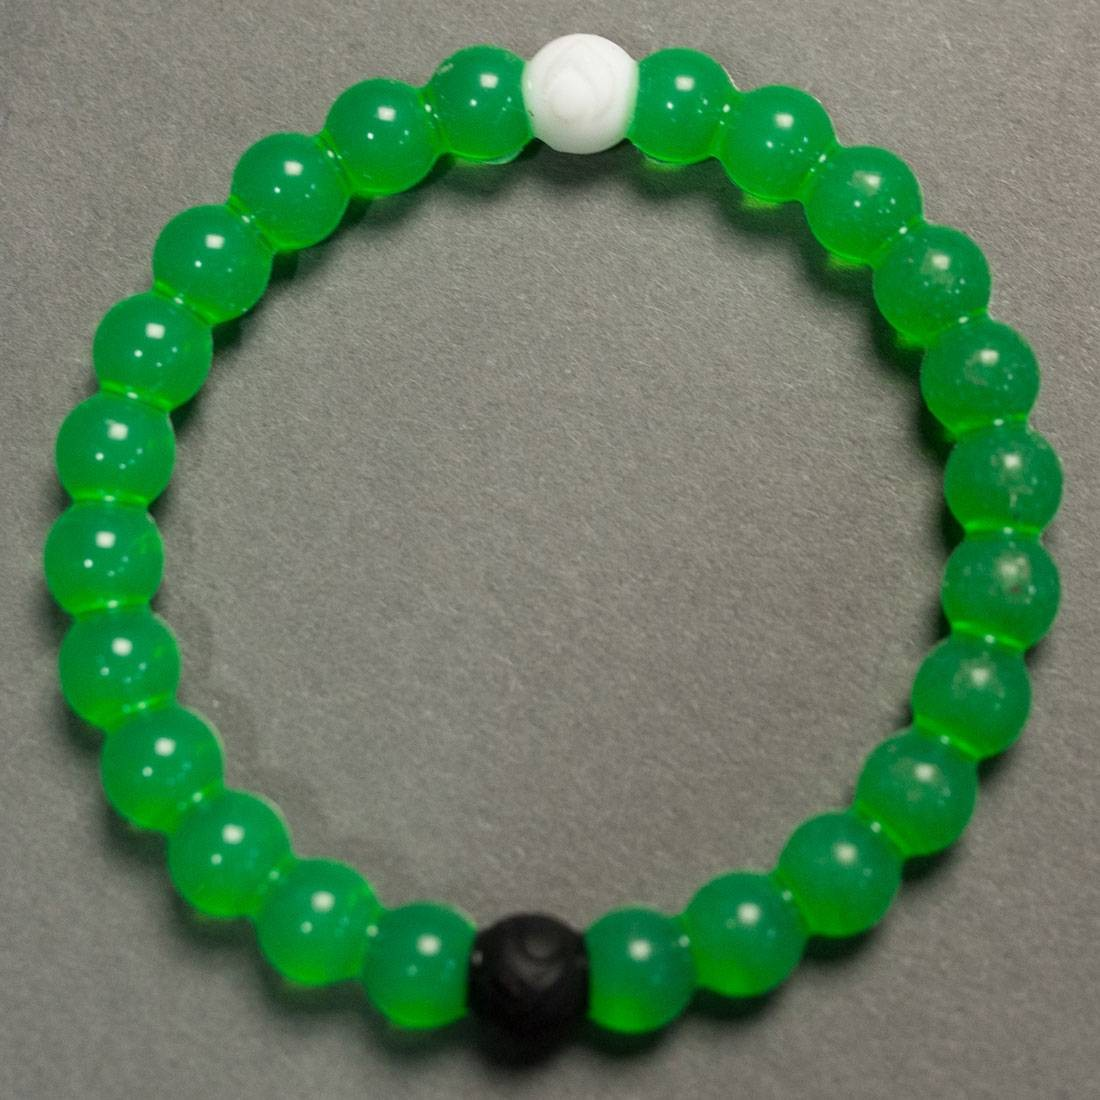 lokia bracelet lokai bracelet limited edition nature conservancy green 6318